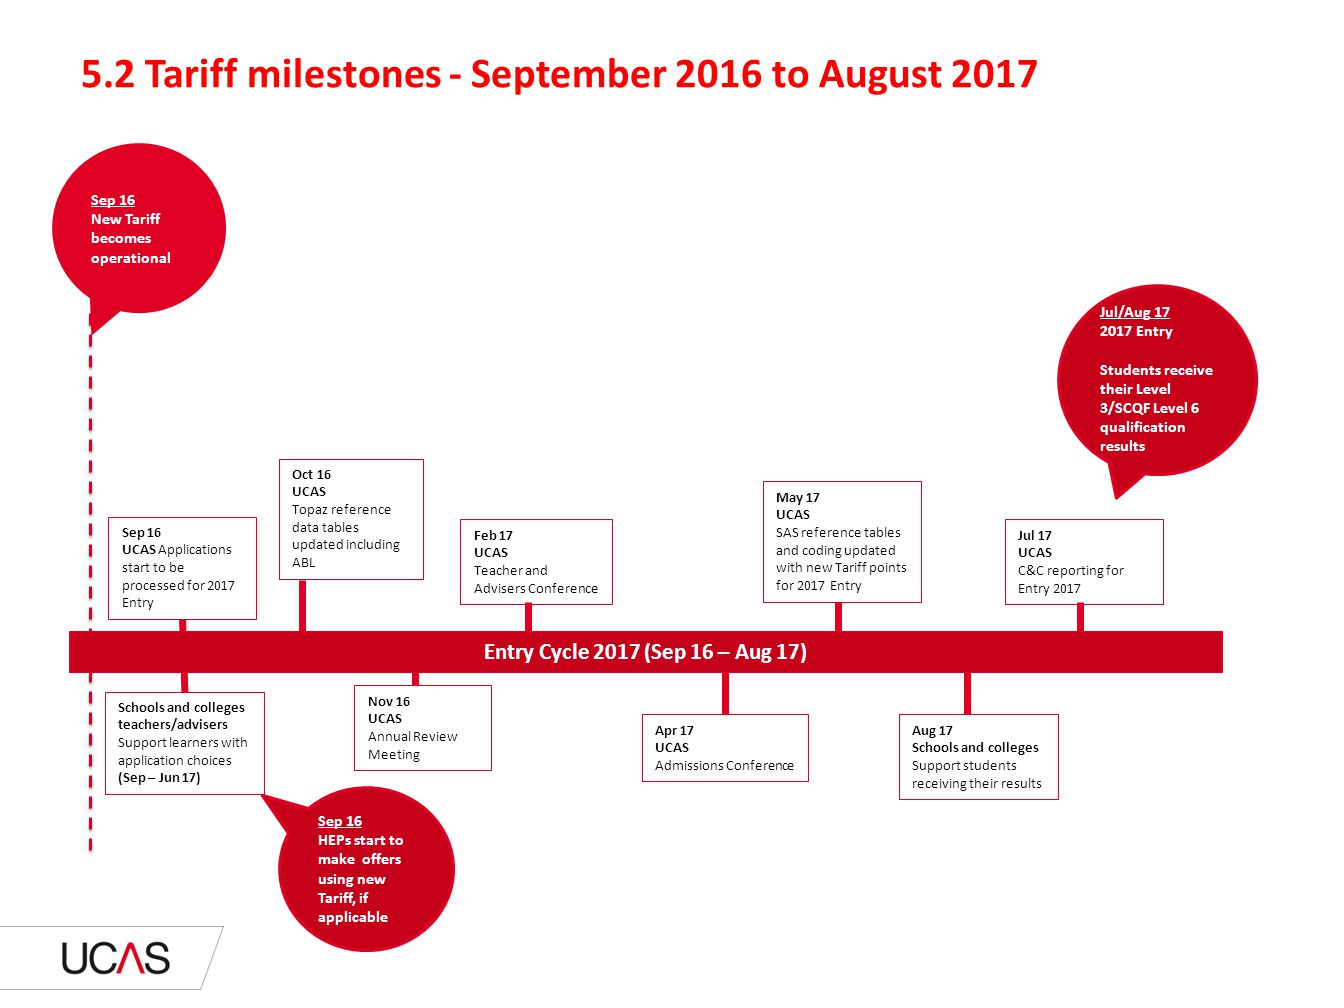 5.2 Tariff milestones - September 2016 to August 2017 Jul 17 UCAS C&C reporting for Entry 2017 Jul/Aug 17 2017 Entry Students receive their Level 3/SC